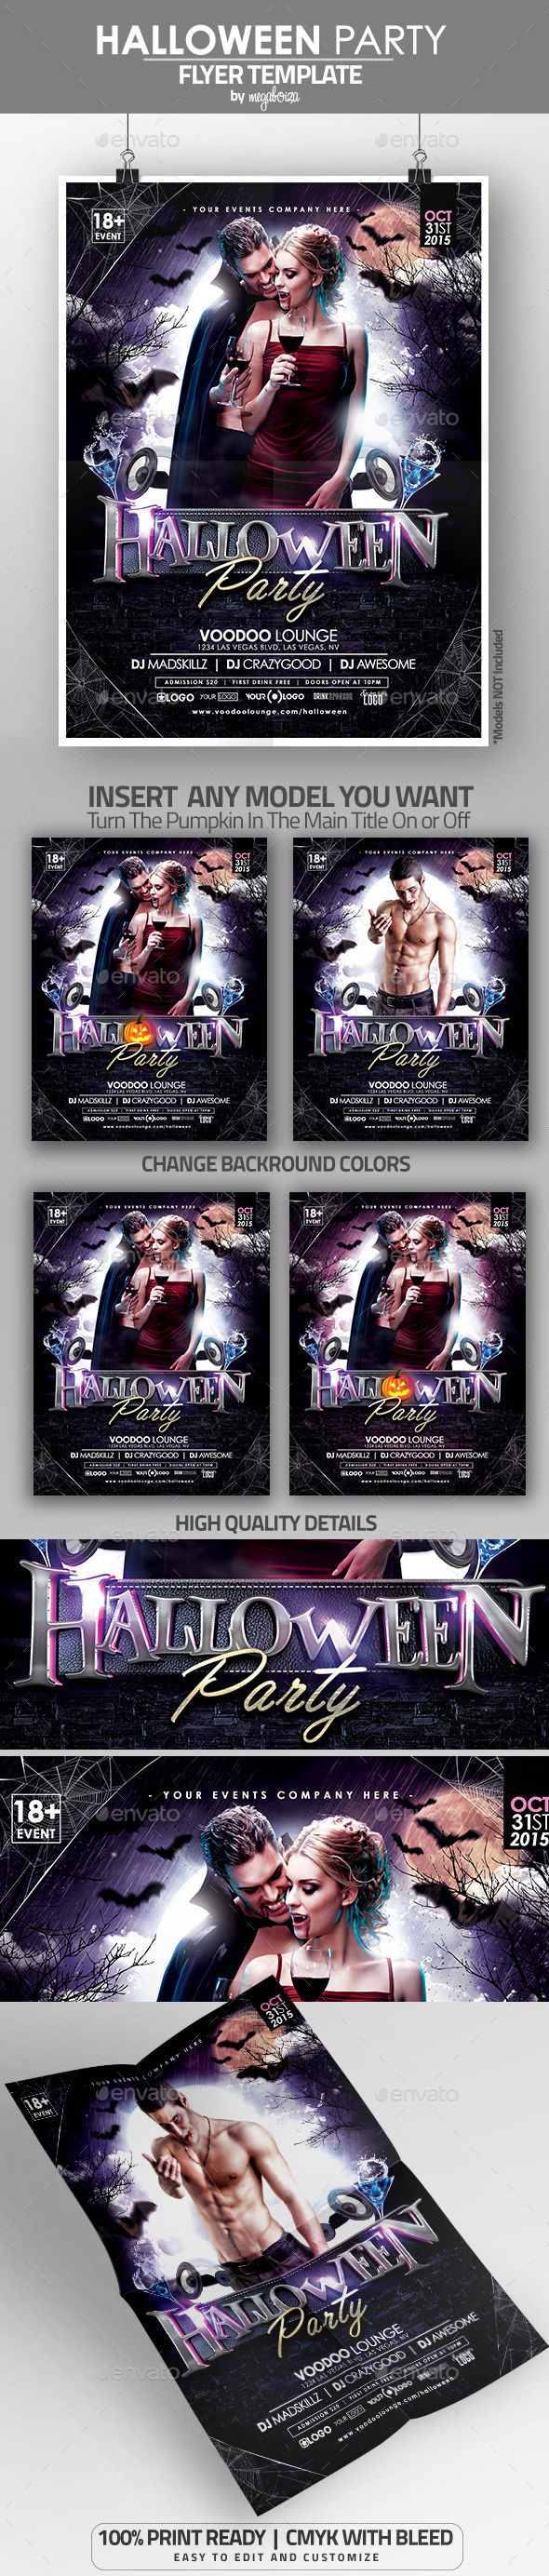 Halloween Party Flyer by Megaboiza (Halloween party flyer)